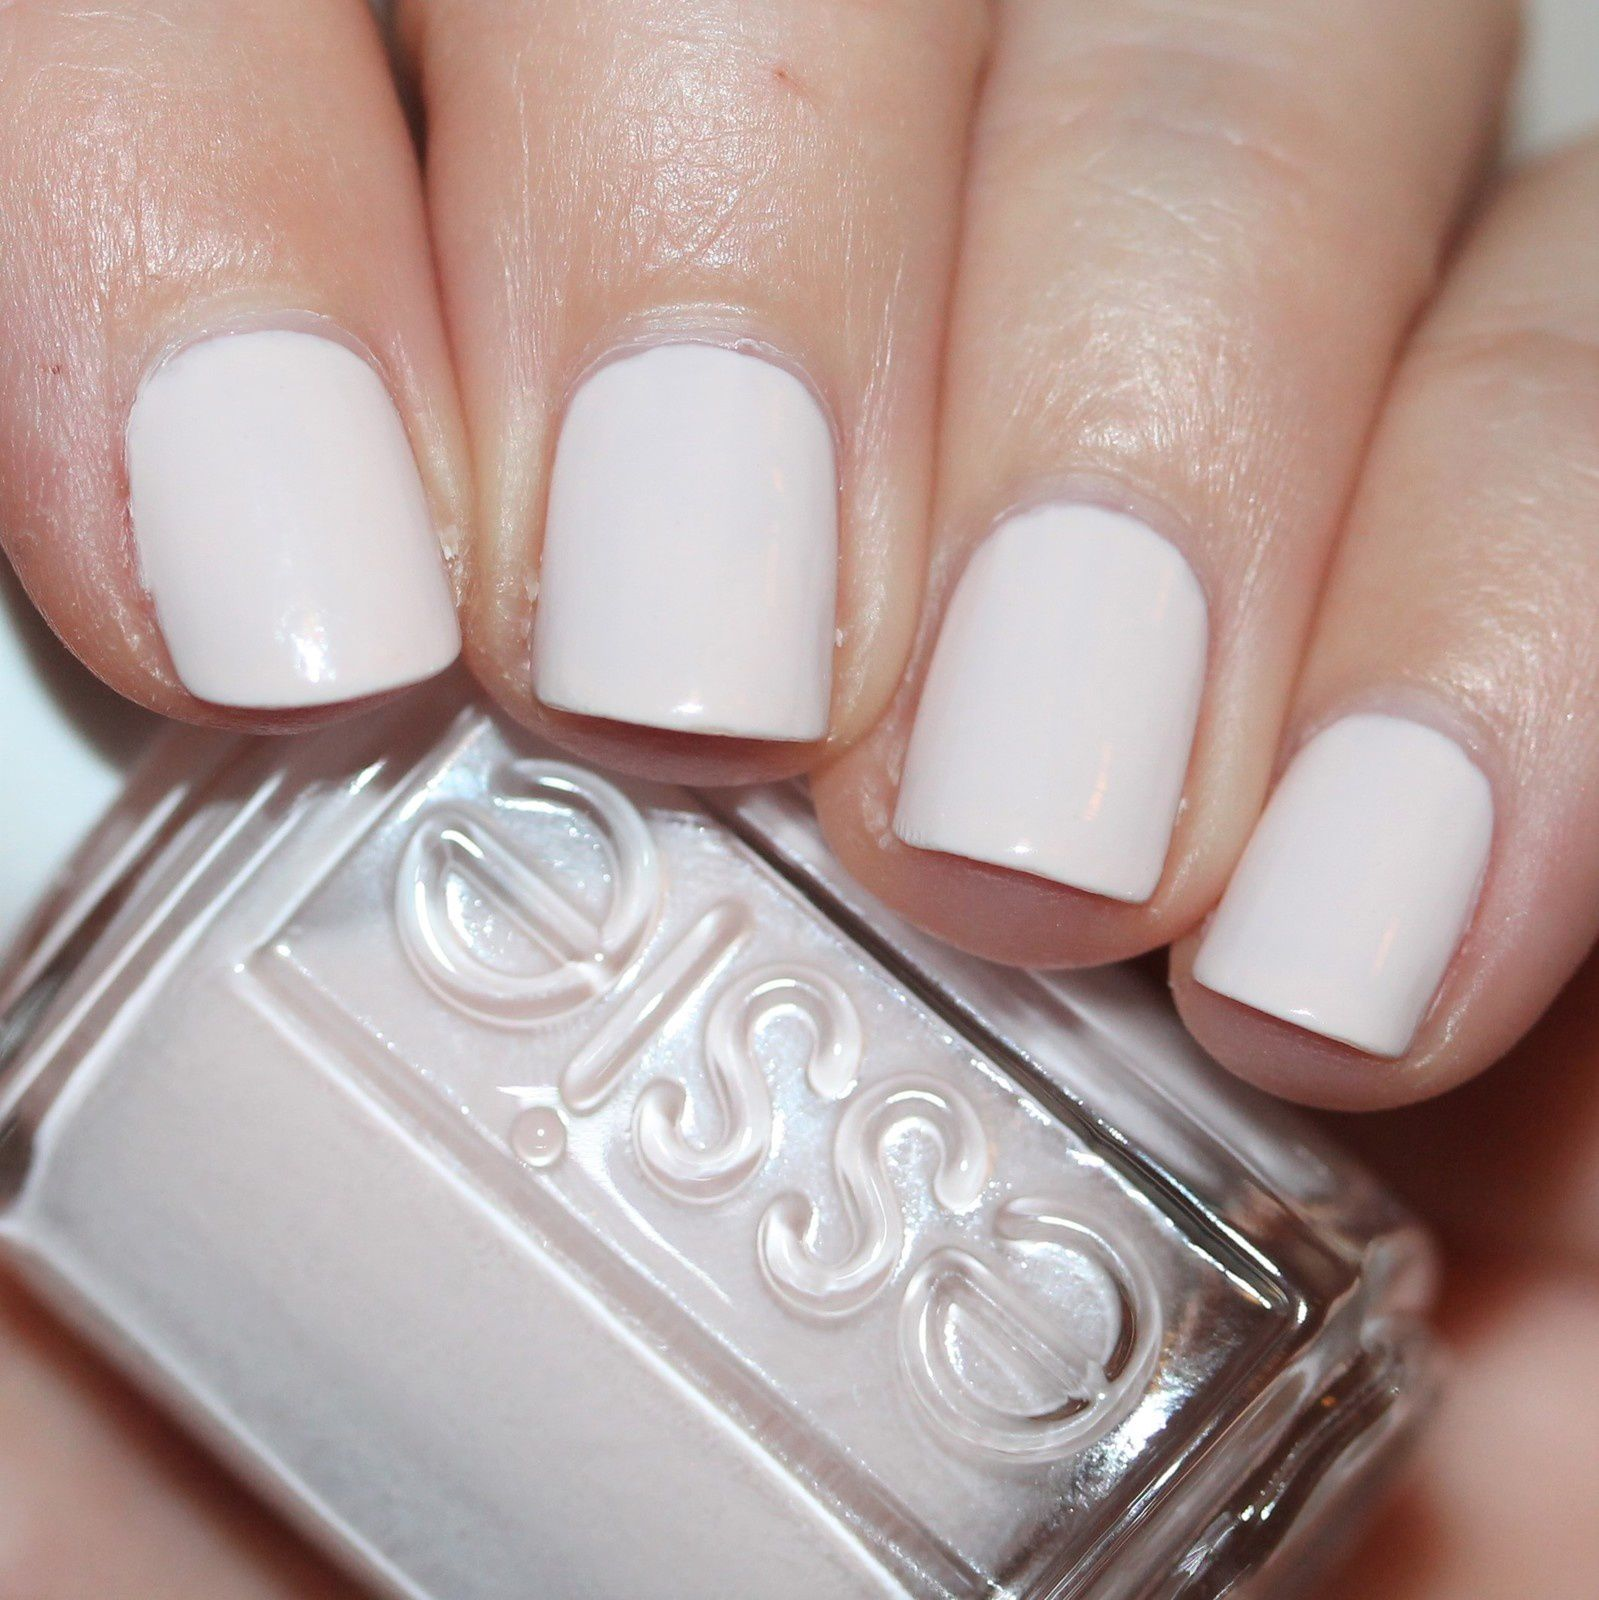 Essie TLC In A Blush / Essie Gel Top Coat